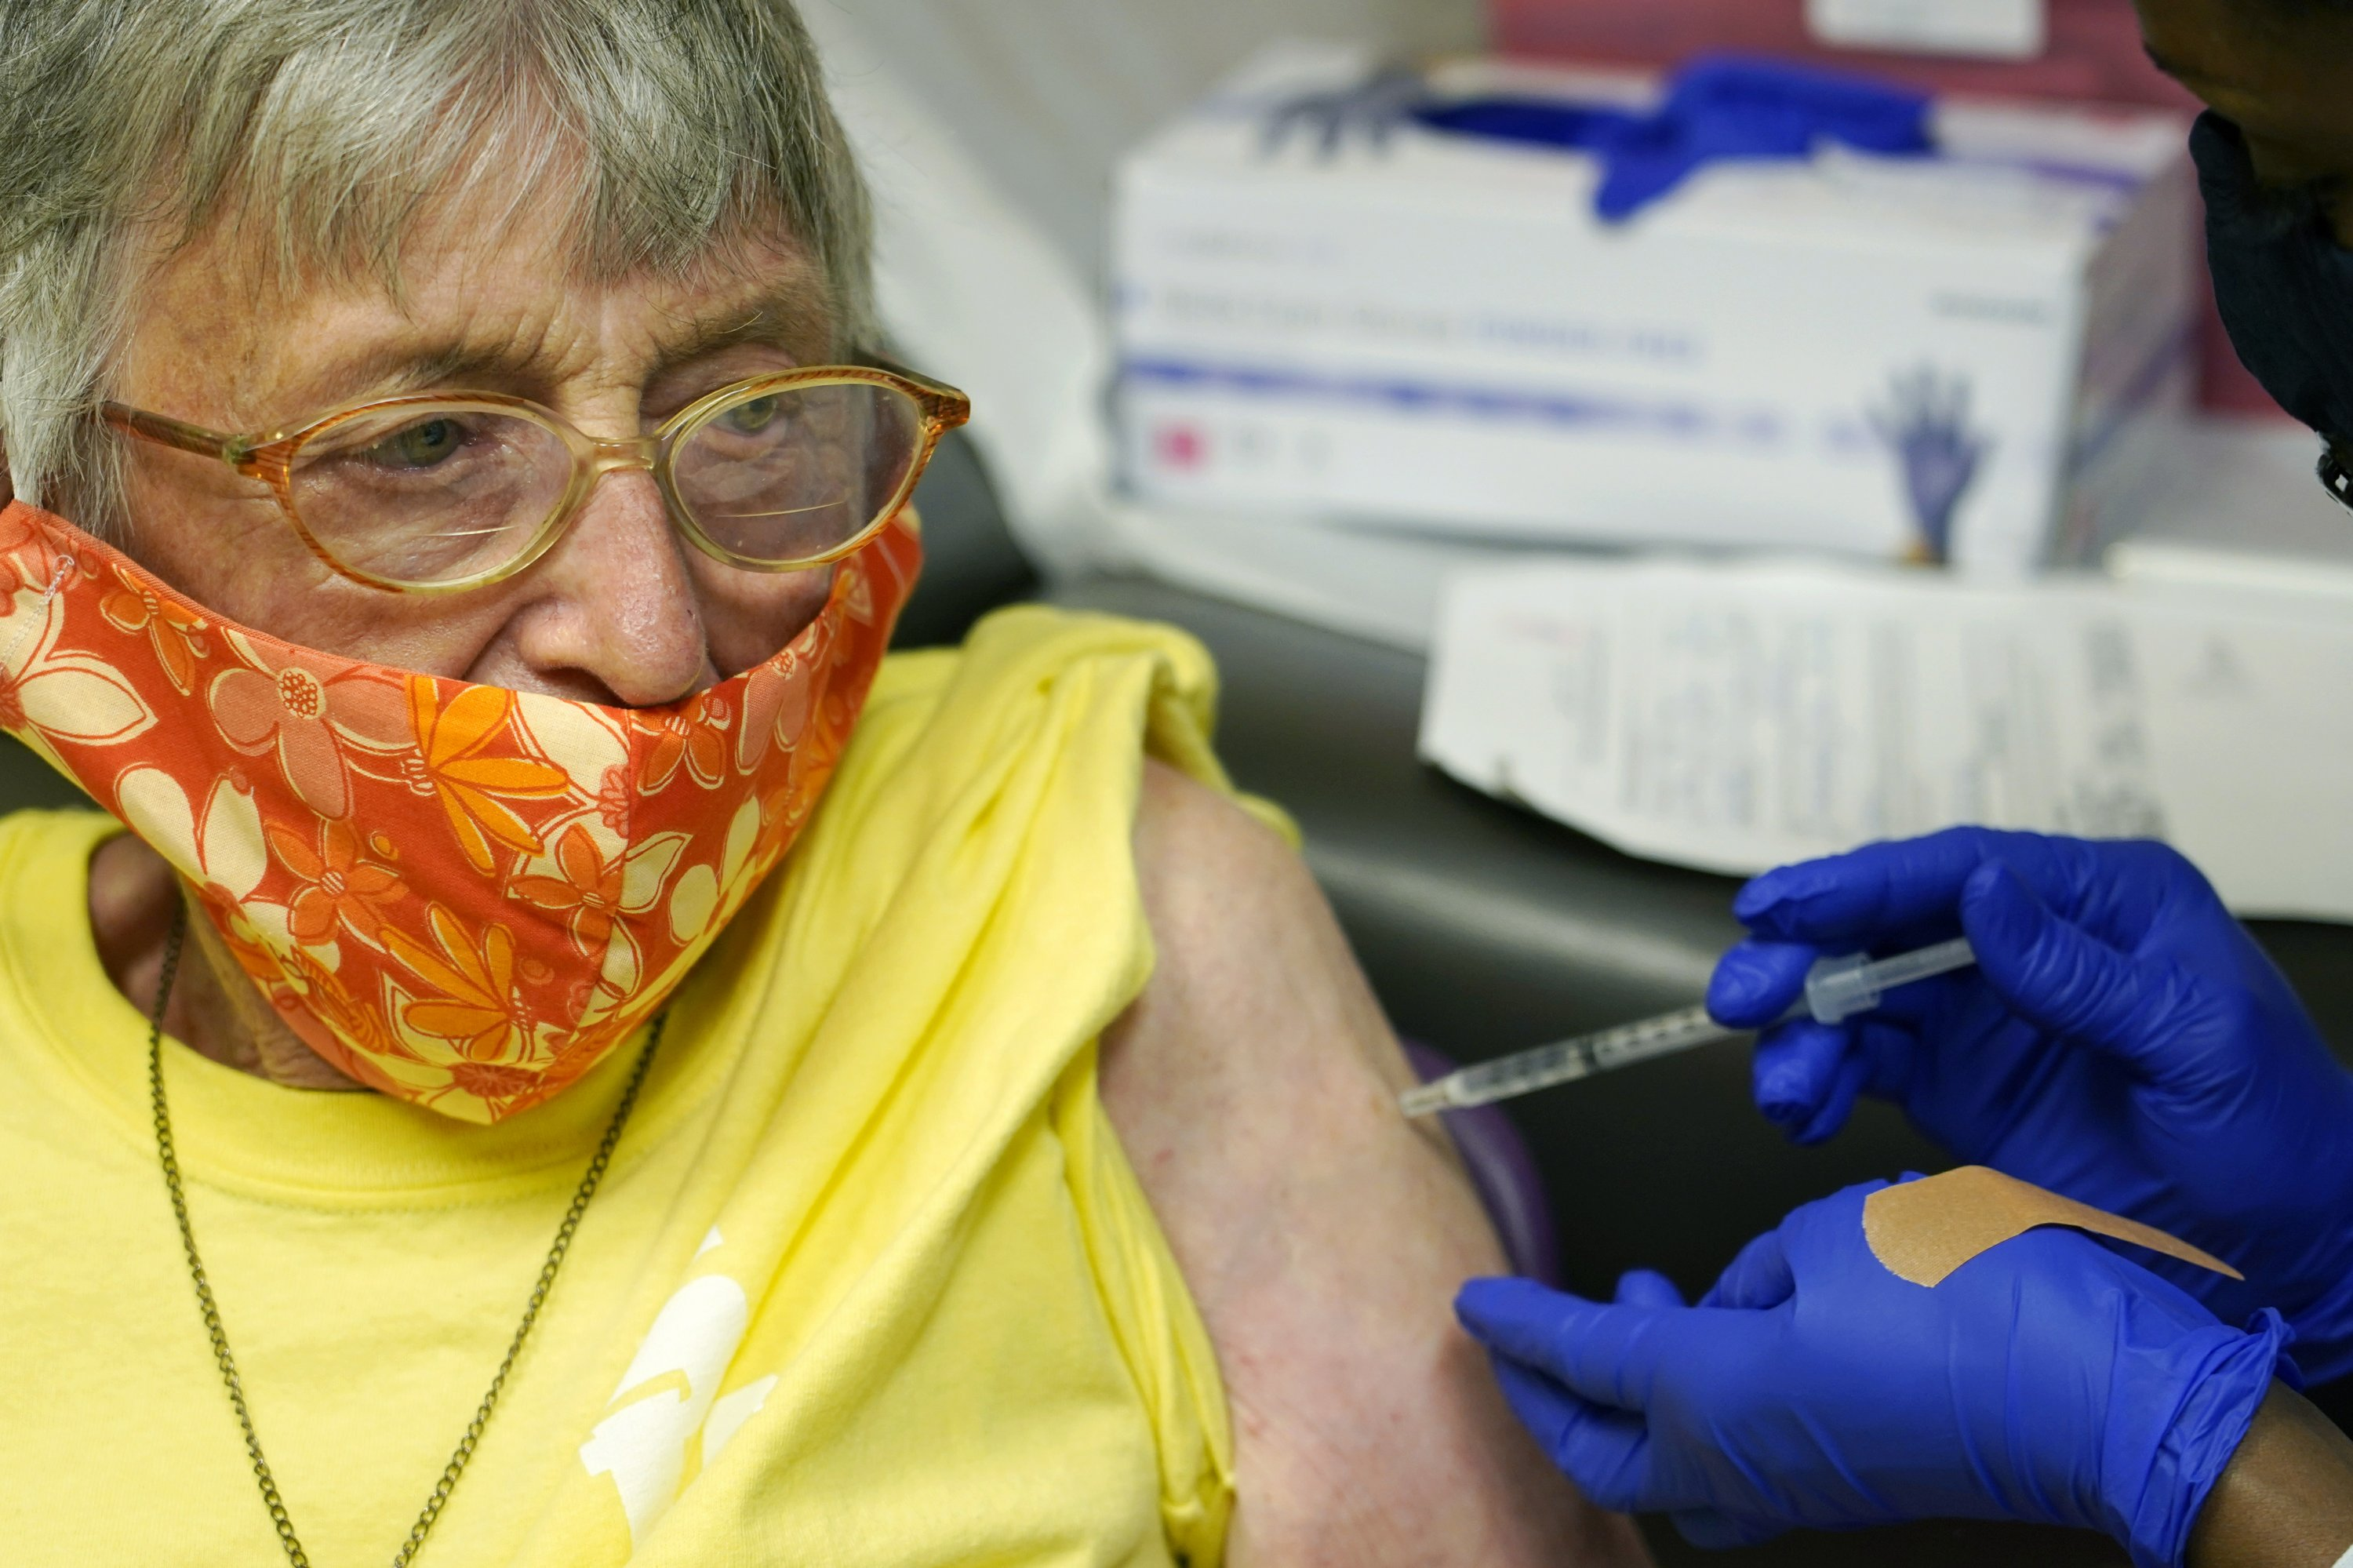 Summoning seniors: Big new push to vaccinate older Americans